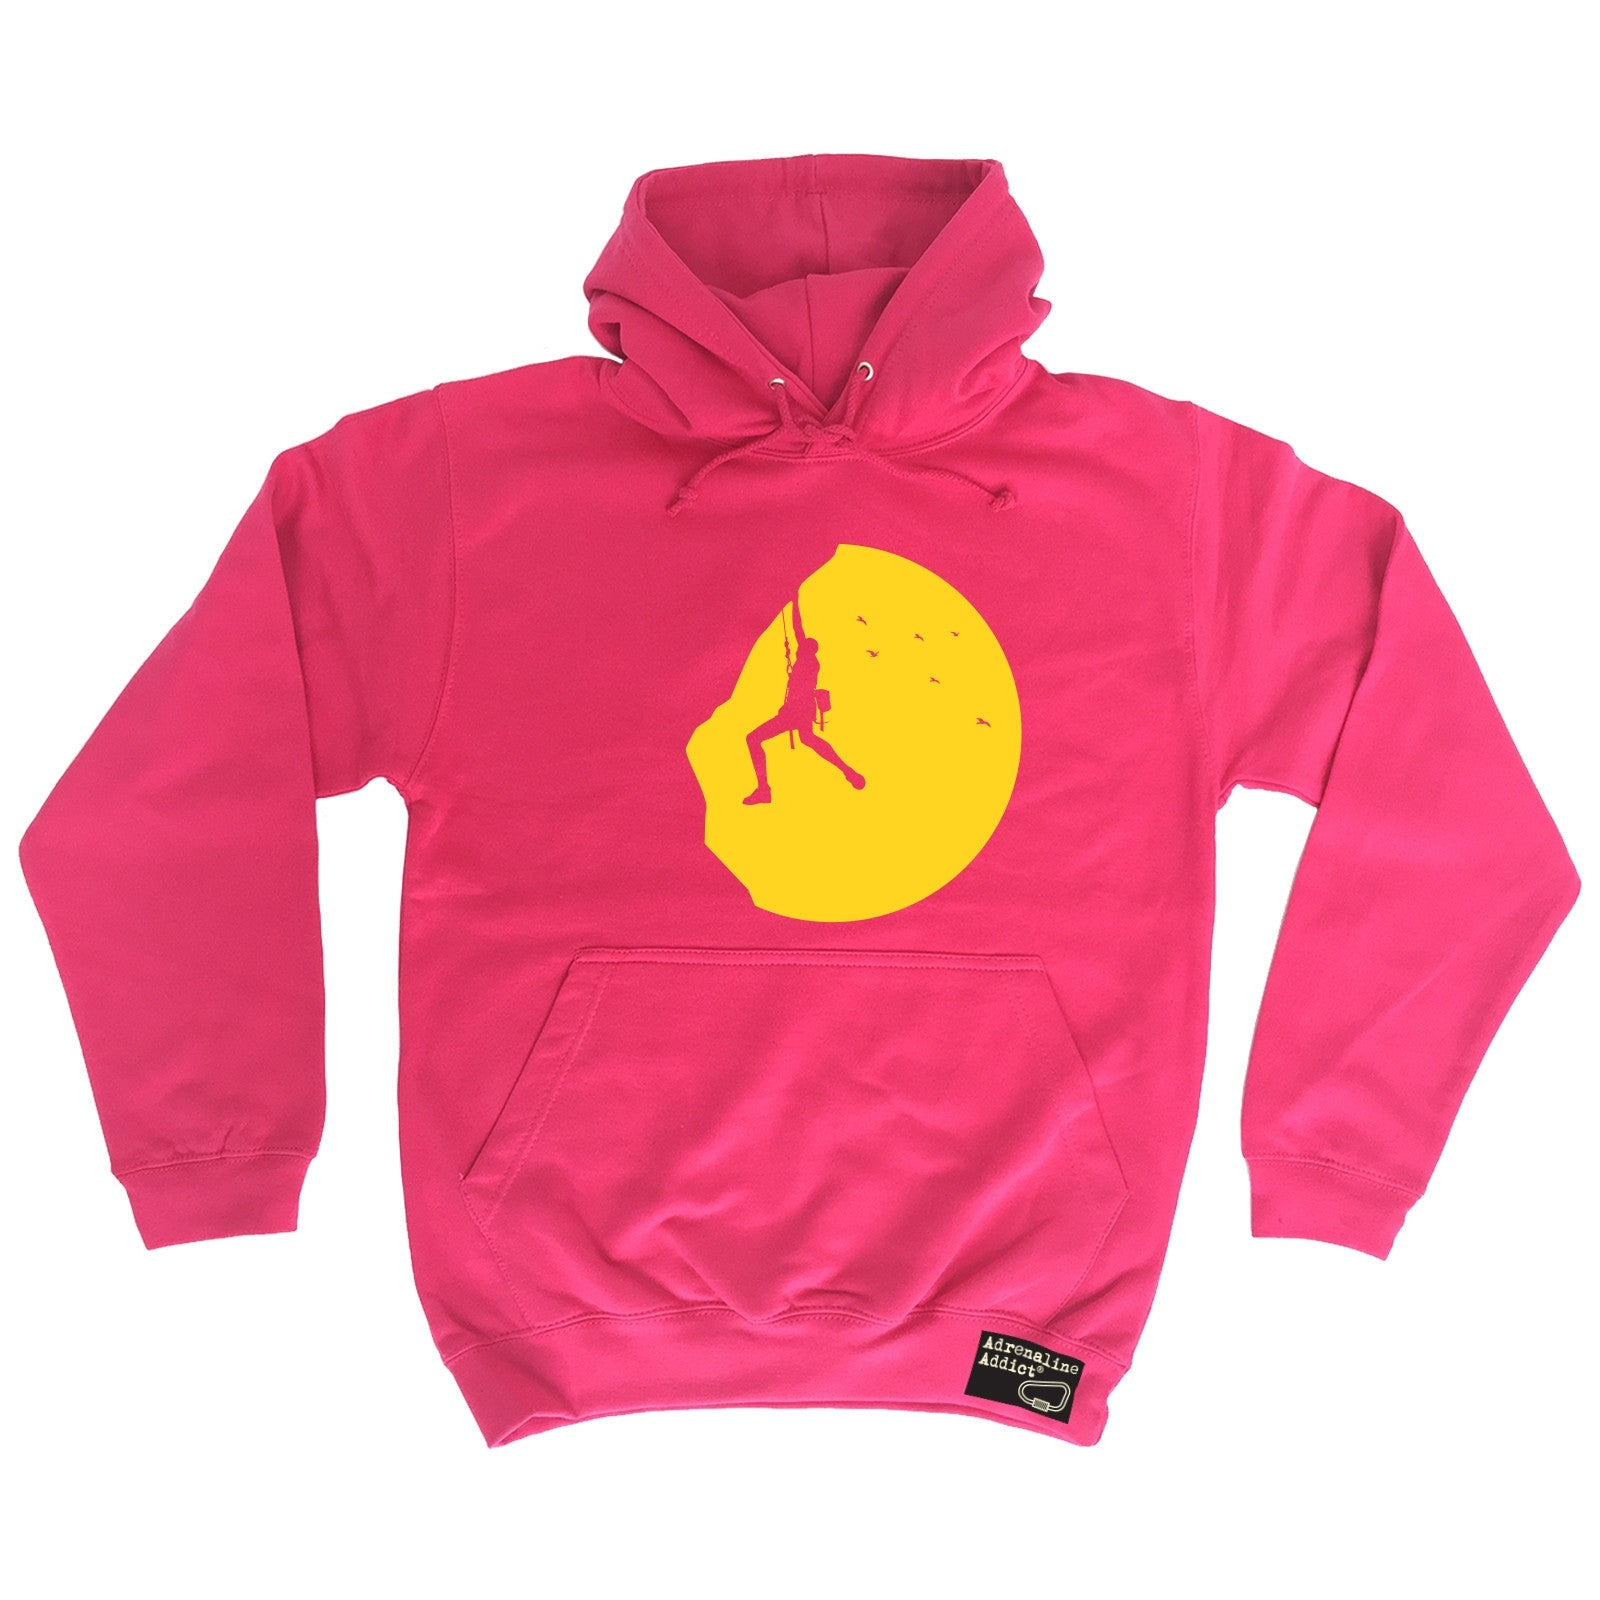 Rock-Climbing-Sunset-Adrenaline-Addict-HOODIE-hoody-birthday-gift-climb-warm